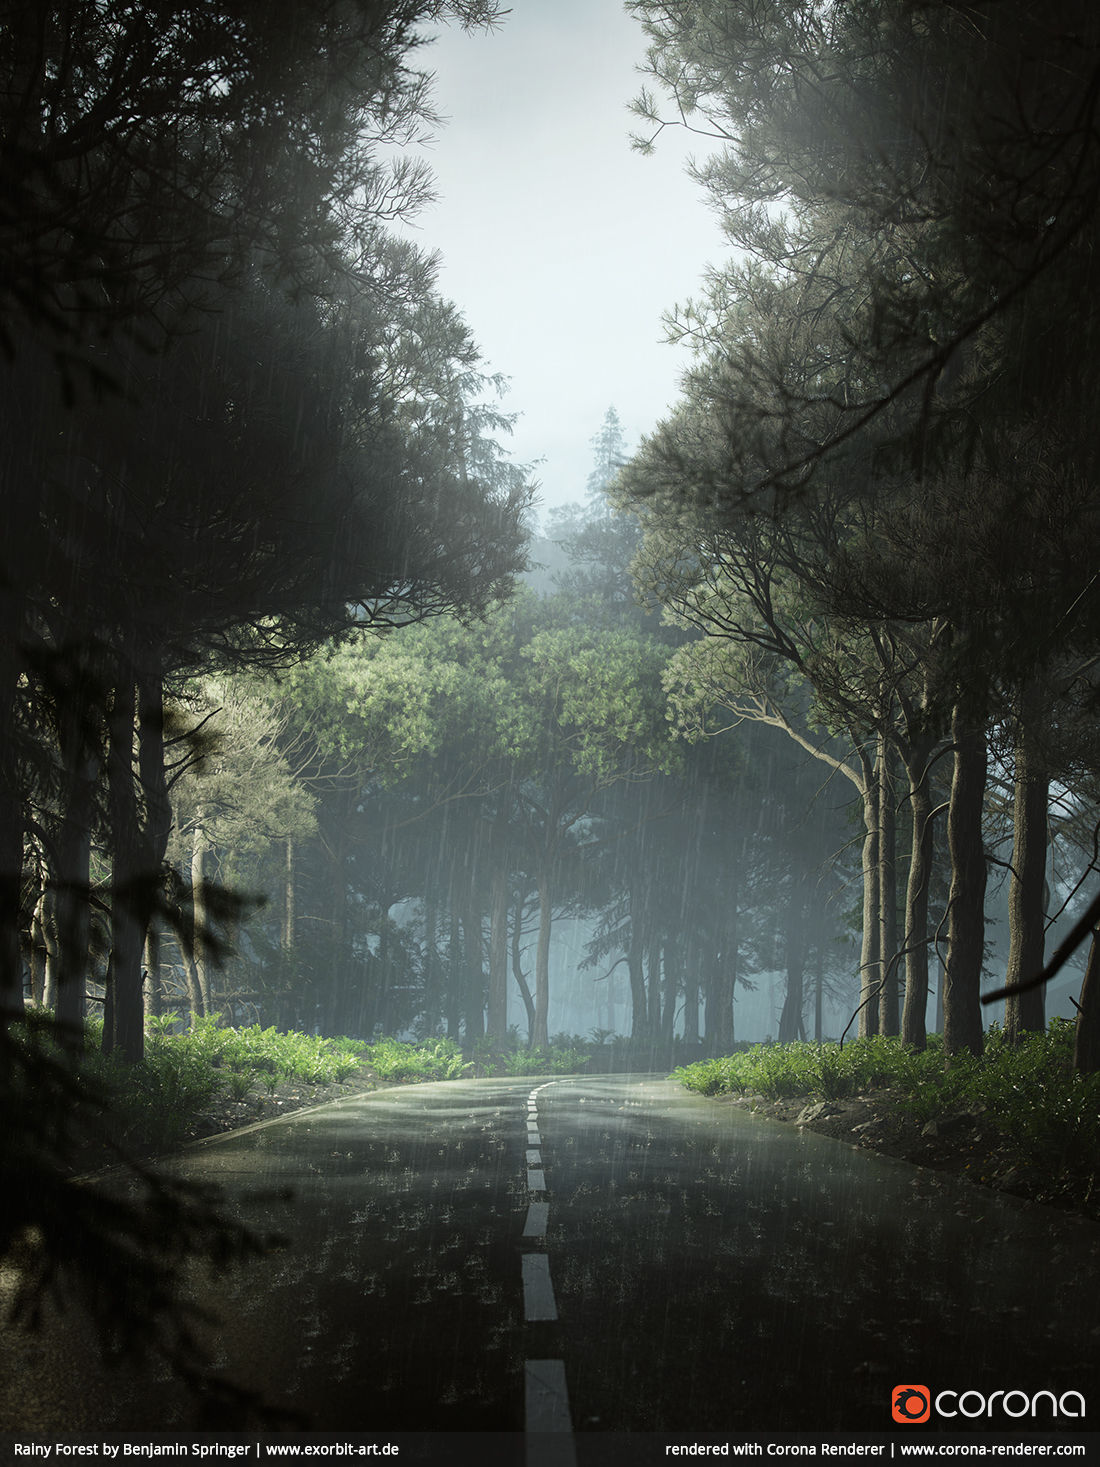 Rainy Forest by Benjamin Springer, EXORBITART - Cinema 4D